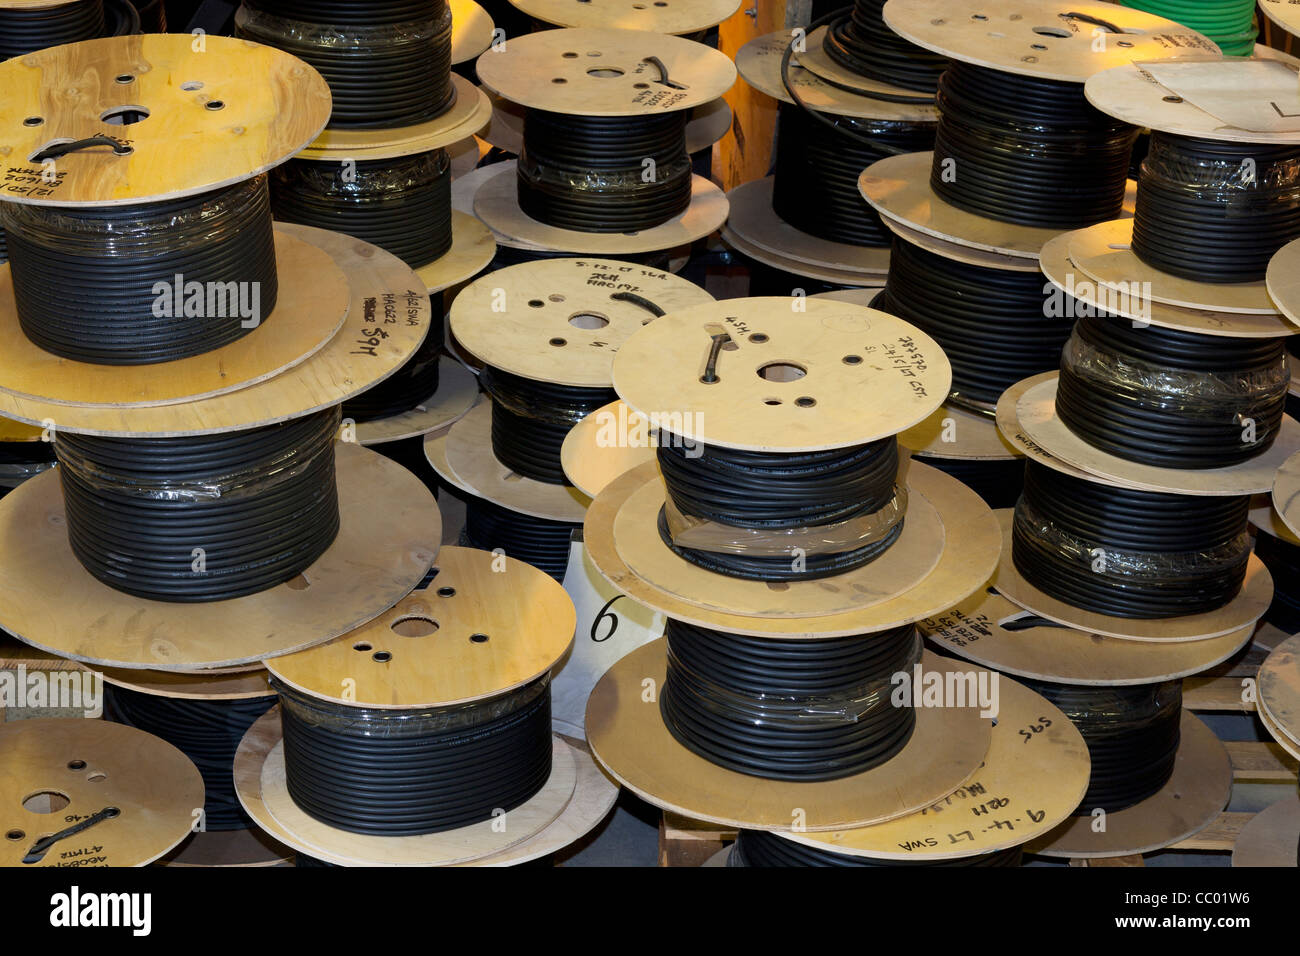 Small cable reels of fibre optic cable - Stock Image